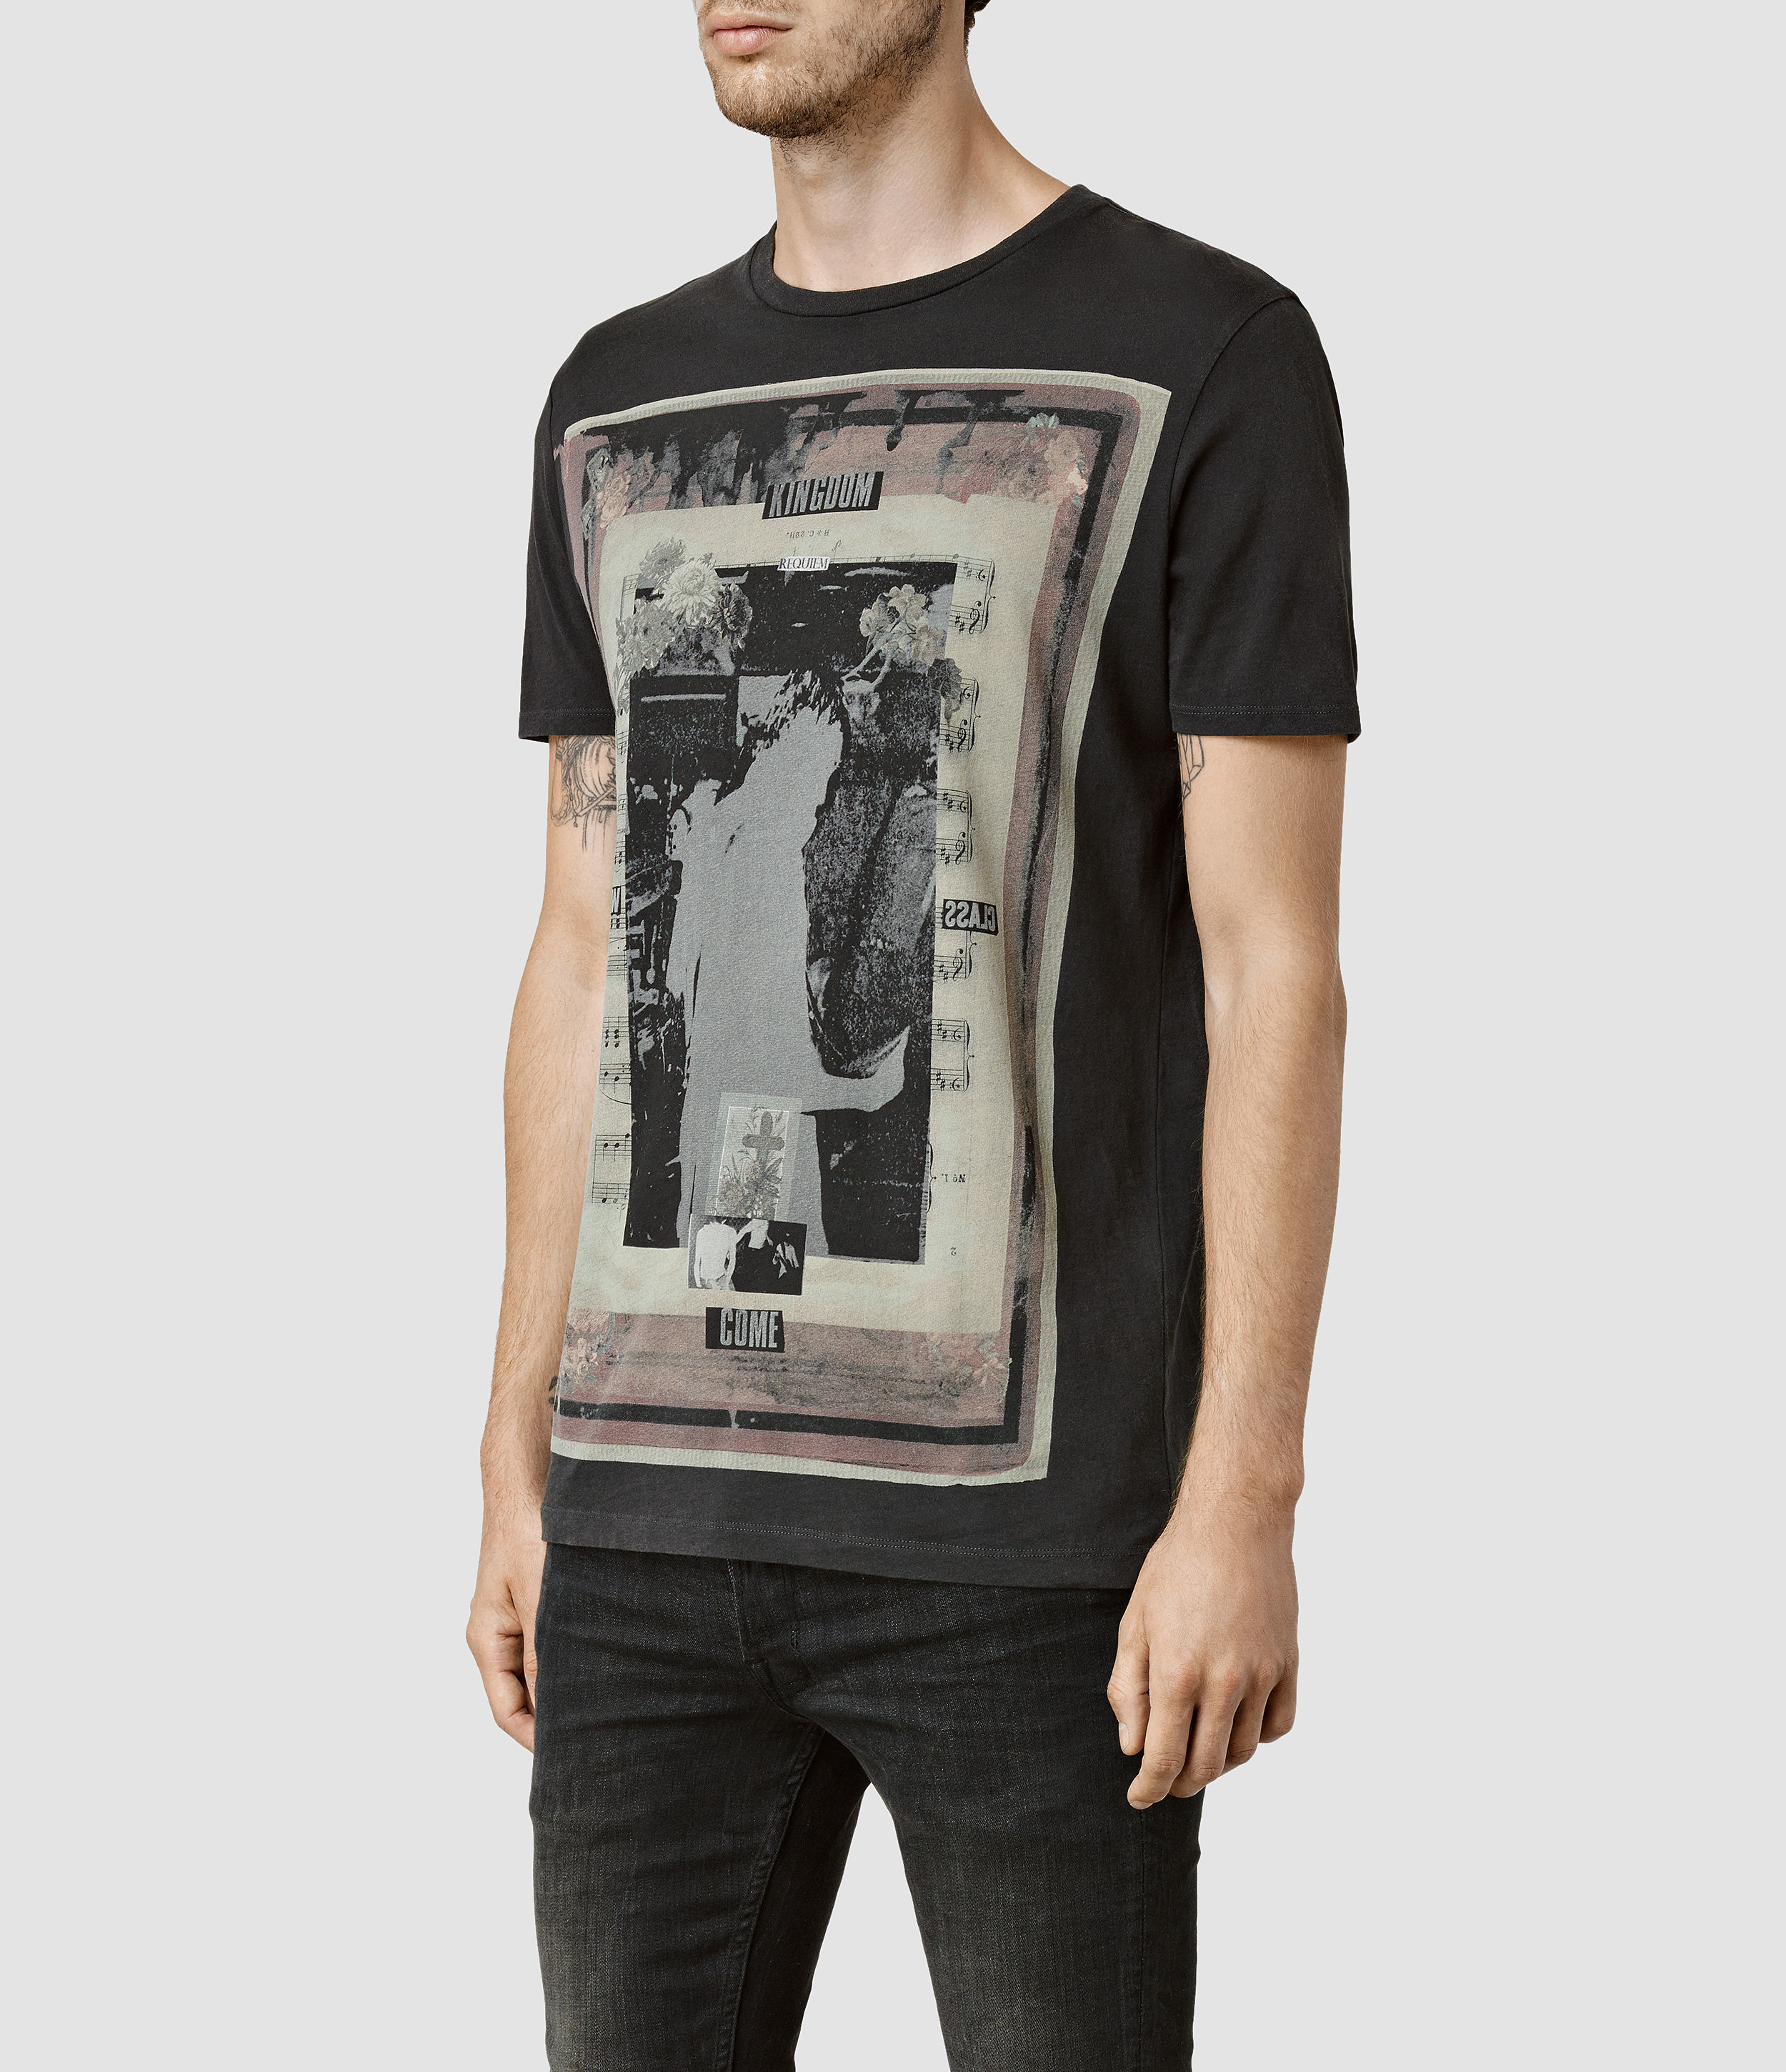 5e55c8e200 AllSaints Kingdom Crew T-shirt in Black for Men - Lyst